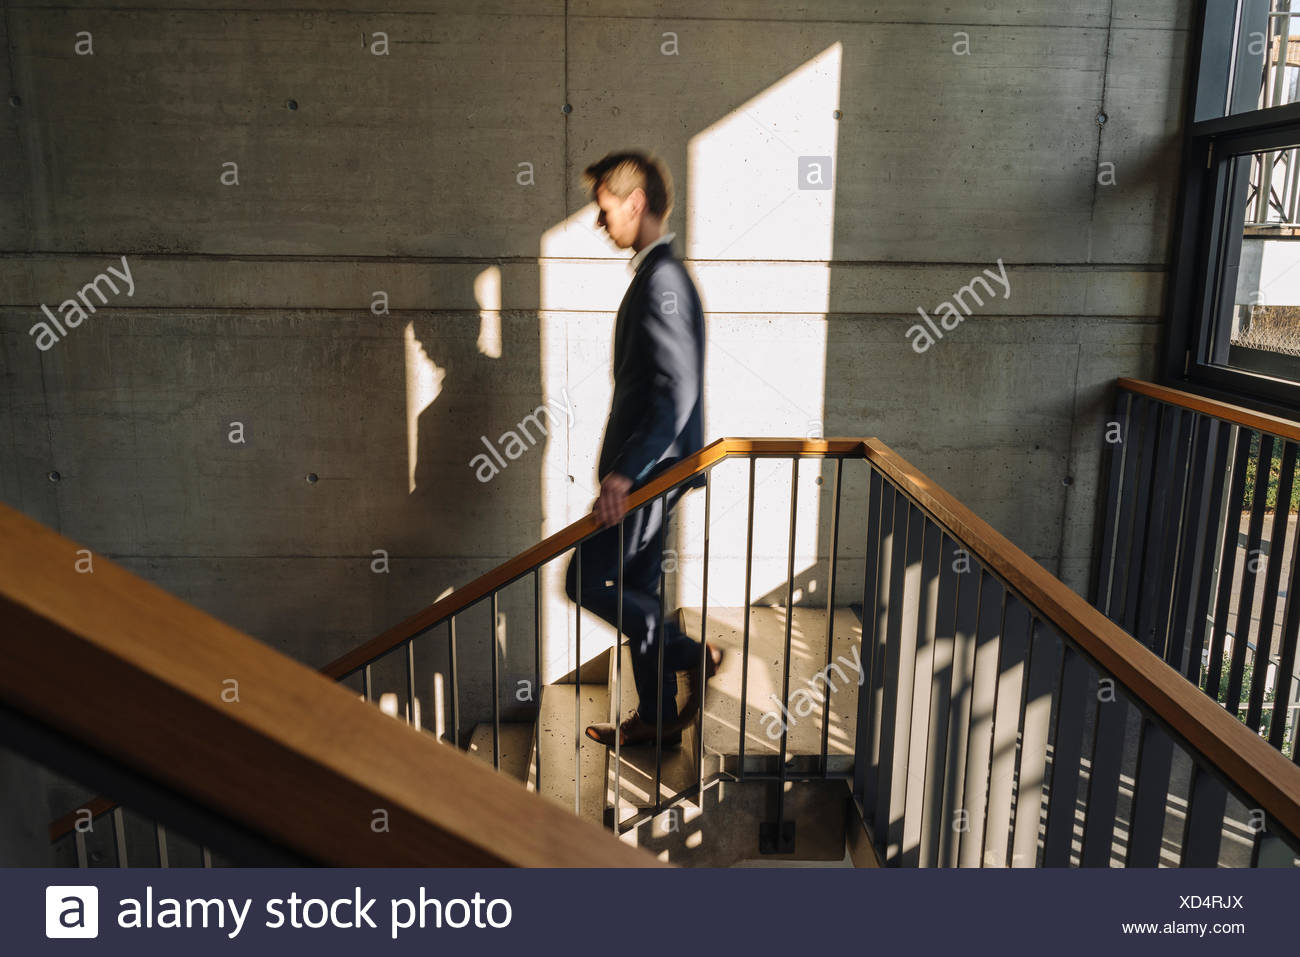 Businessman walking down stairs Photo Stock